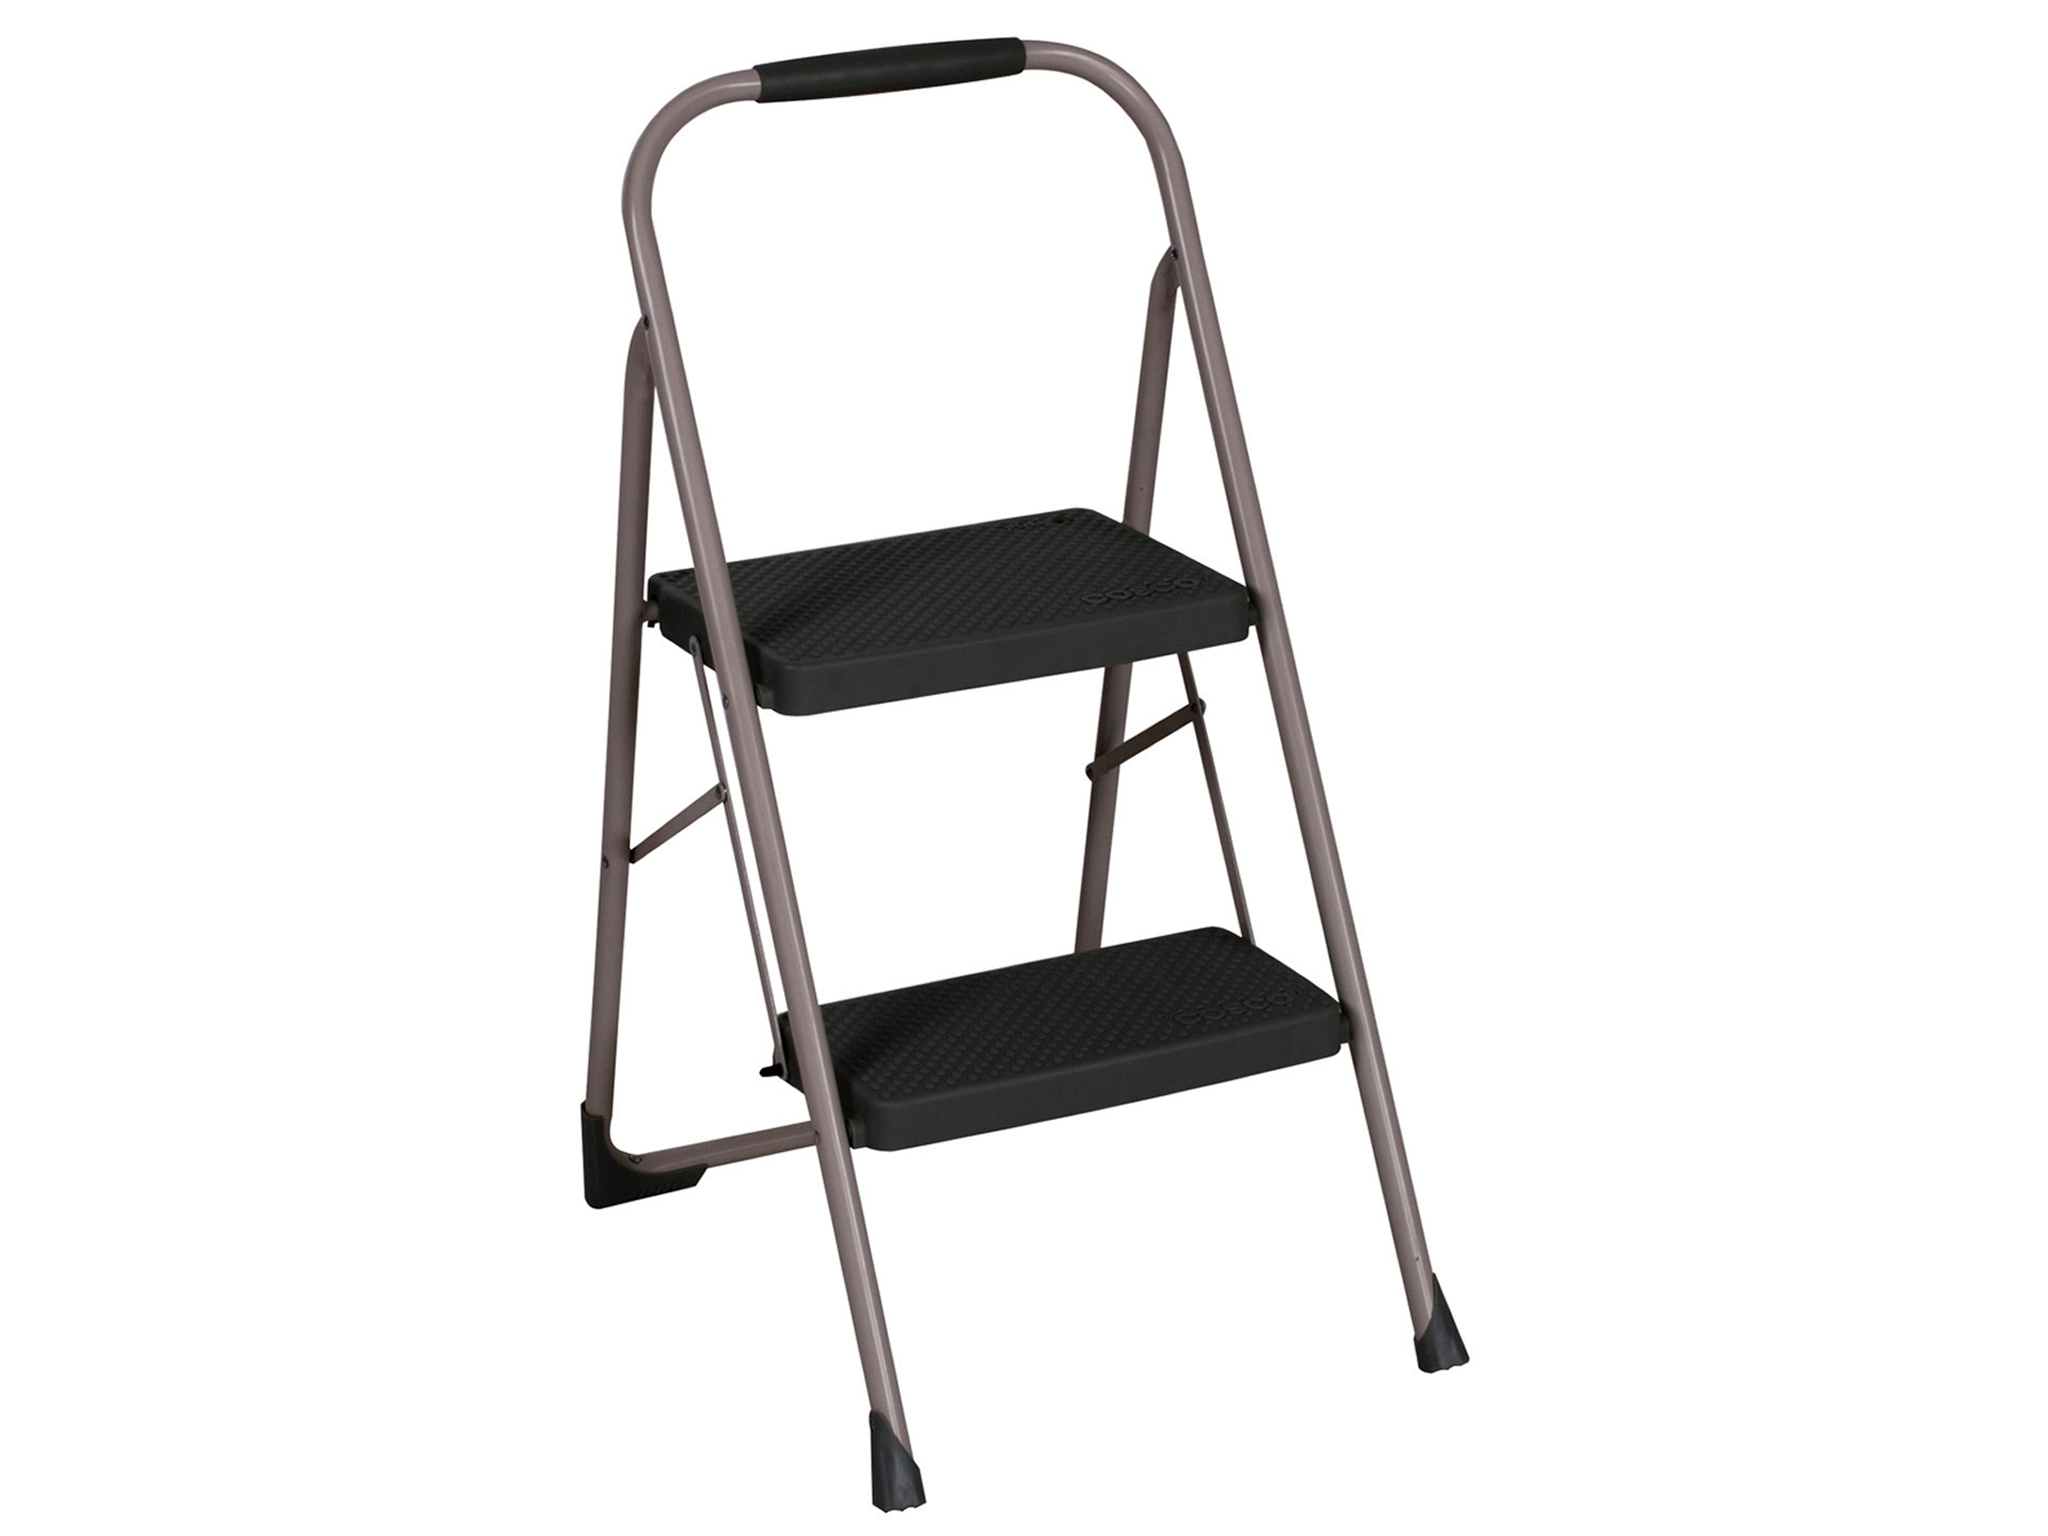 Cosco 2 Step Big Step Folding Step Stool